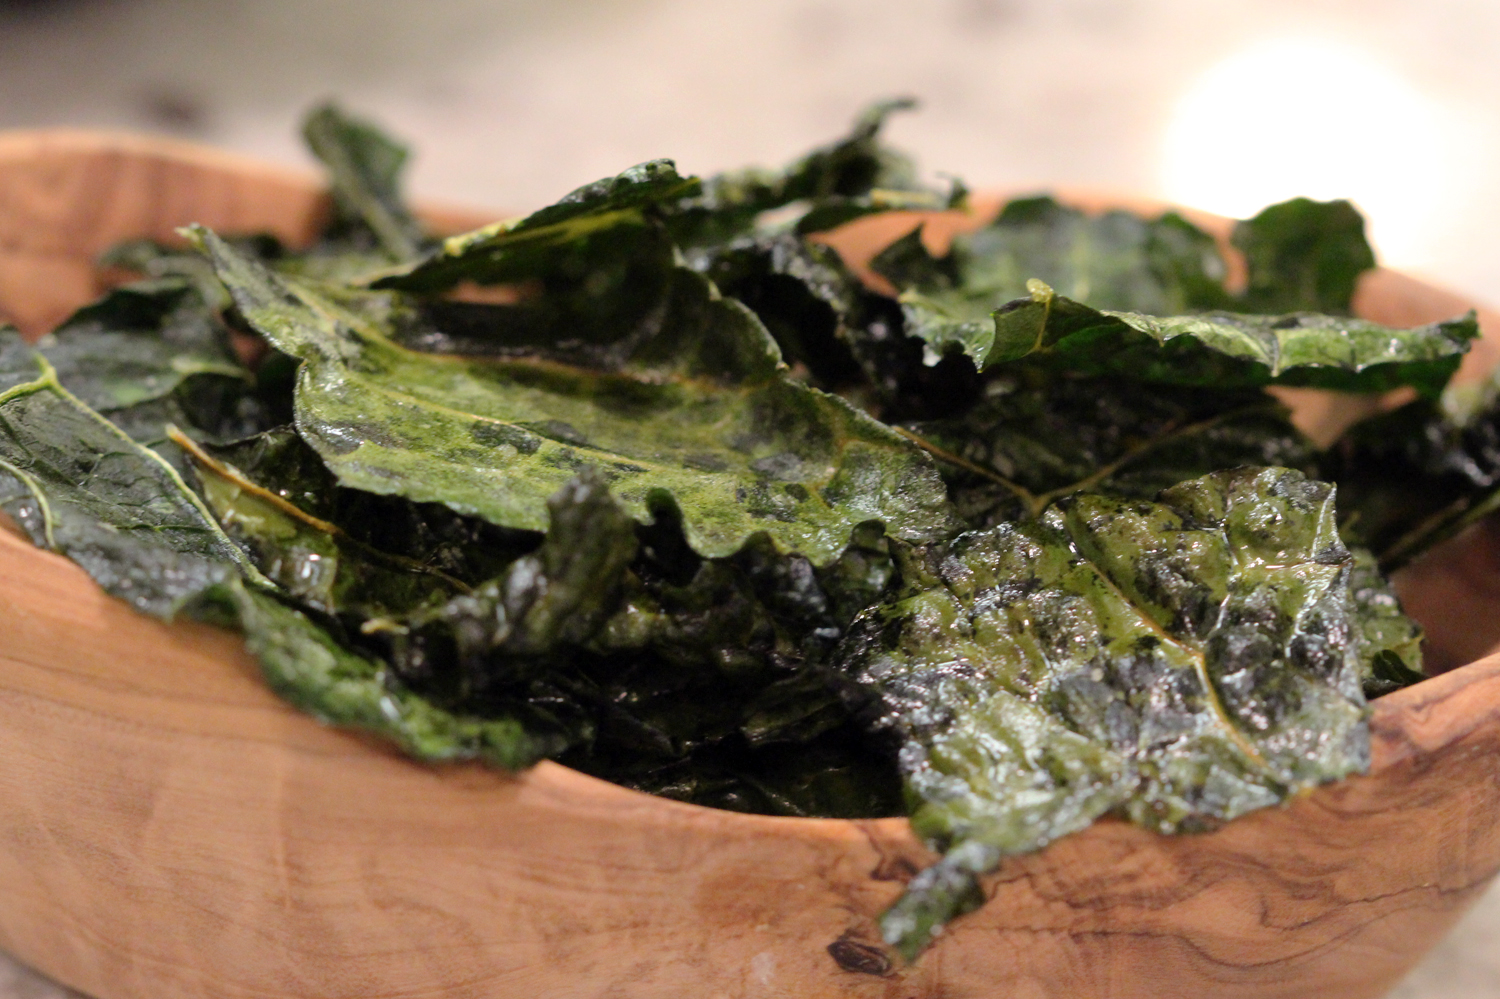 - ingredients-1 bunch of kale (any variety will work here, however, I like using black kale as it's flatter than other varieties and I like the way it dehydrates once baked. With that being said, use whatever looks best or what your favourite variety is)-2 tbsp good quality olive oil-sprinkling of sea salt to taste (this amount depends on the size of your kale bunch. Start with a small pinch and work your way up from there, tasting as you go)make it-preheat your oven to 300-thoroughly wash the kale and pat dry. Lay the kale flat on your cutting board to remove the thick inner ribbing. This part of the kale is particularly bitter and can be tough to chew through. Better to get rid of it.-slice the kale leaves into whatever size chips you'd like. Not too big, not too small. Add them to a large bowl and drizzle with olive oil. The important part here is to massage the oil into the kale. Otherwise, you'll notice the oil just sits on top and doesn't properly coat each piece. This step is crucial for extra delicious kale chips- do not skip.-once the kale has been massaged, sprinkle your sea salt over top and mix well to coat evenly-lay your chips out in a single layer on the pan. This step is also important, the chips need to be in a single layer otherwise they won't crisp up properly. Depending on the size of your pan, you may need to do a few batches-place in the oven and bake for 15-20 minutes until lightly crisp and dehydrated. You may need to keep checking them to make sure they are doing alright. You'll know once they are perfect.-allow chips to cool completely before transferring to a sealed container. Enjoy!